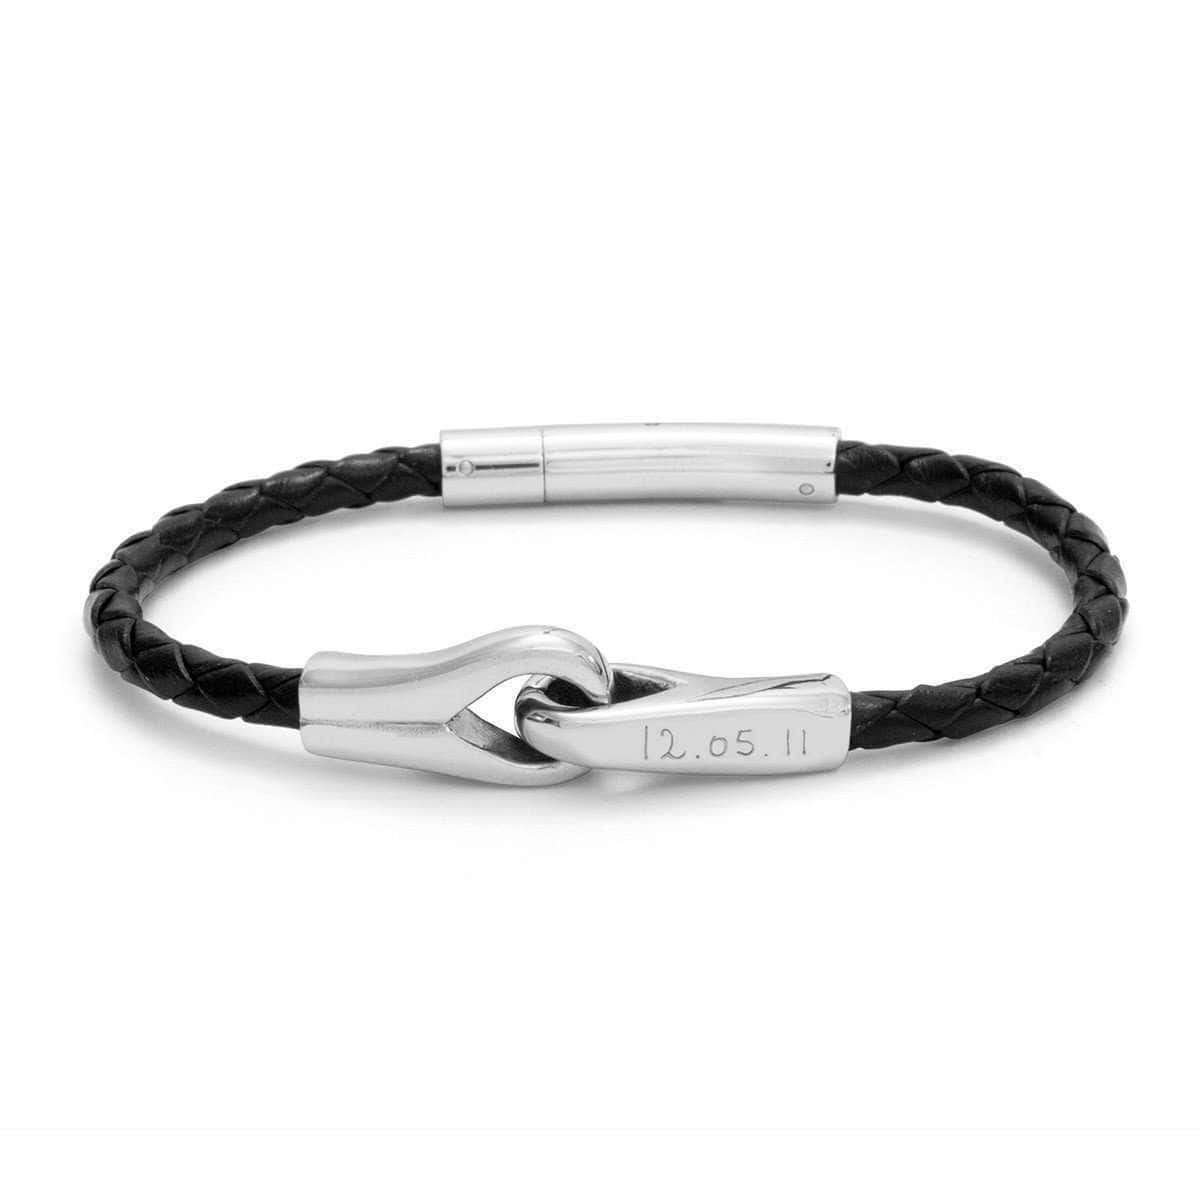 Personalised Leather Braid and Silver Knot Bracelet